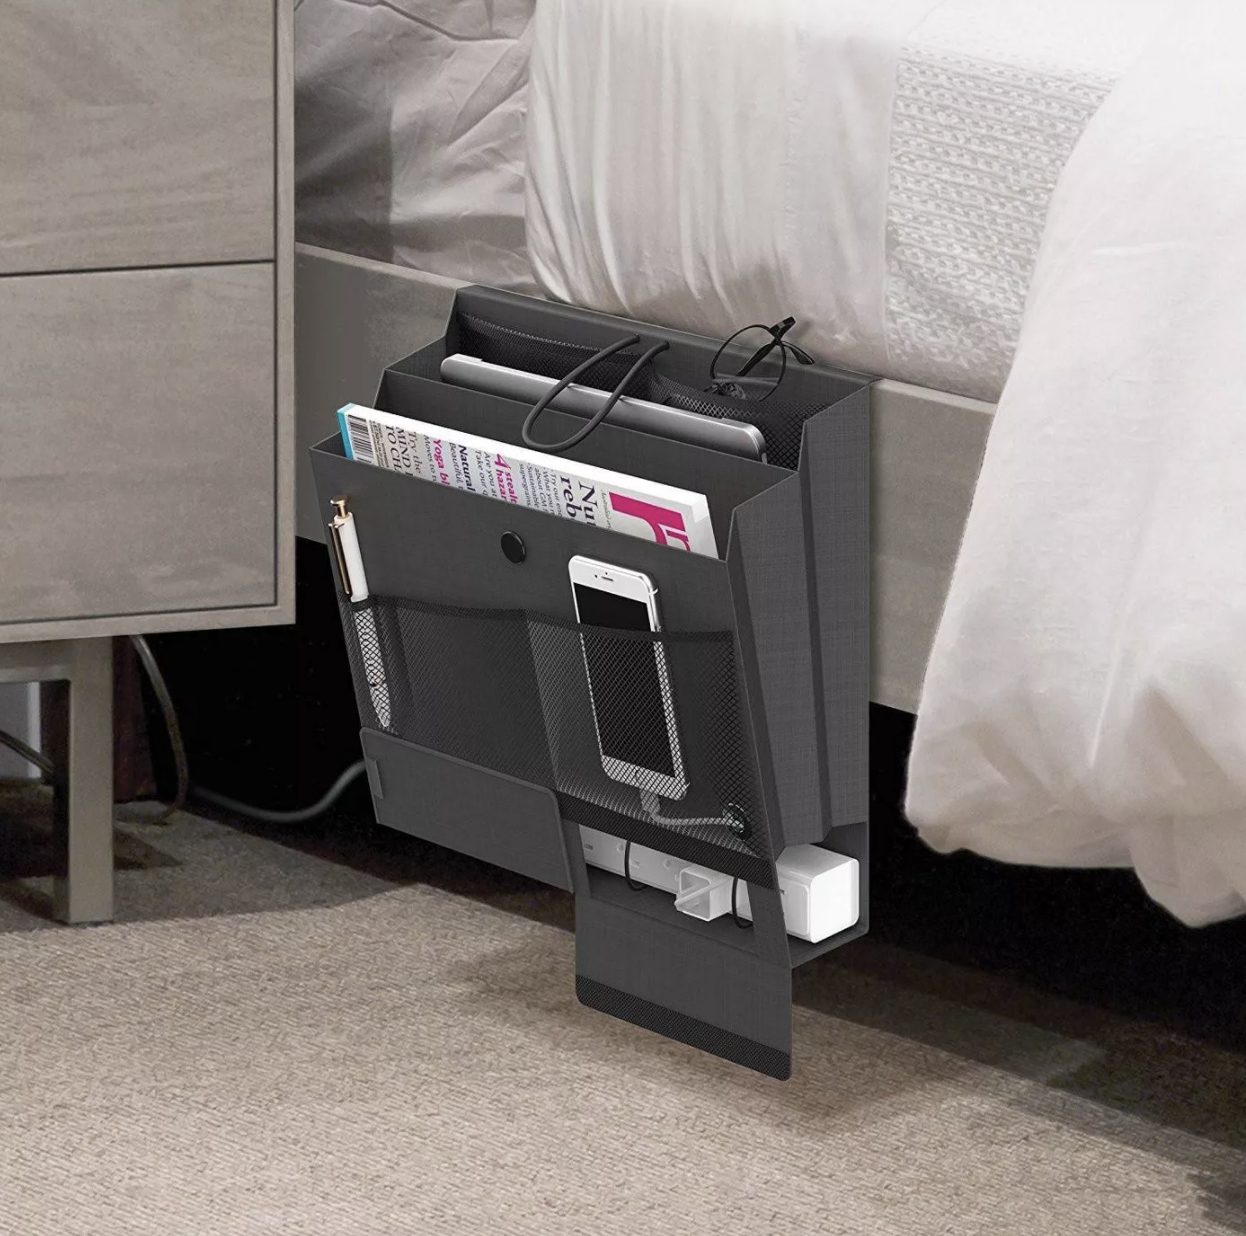 Bedside caddy placed under mattress with various items inside